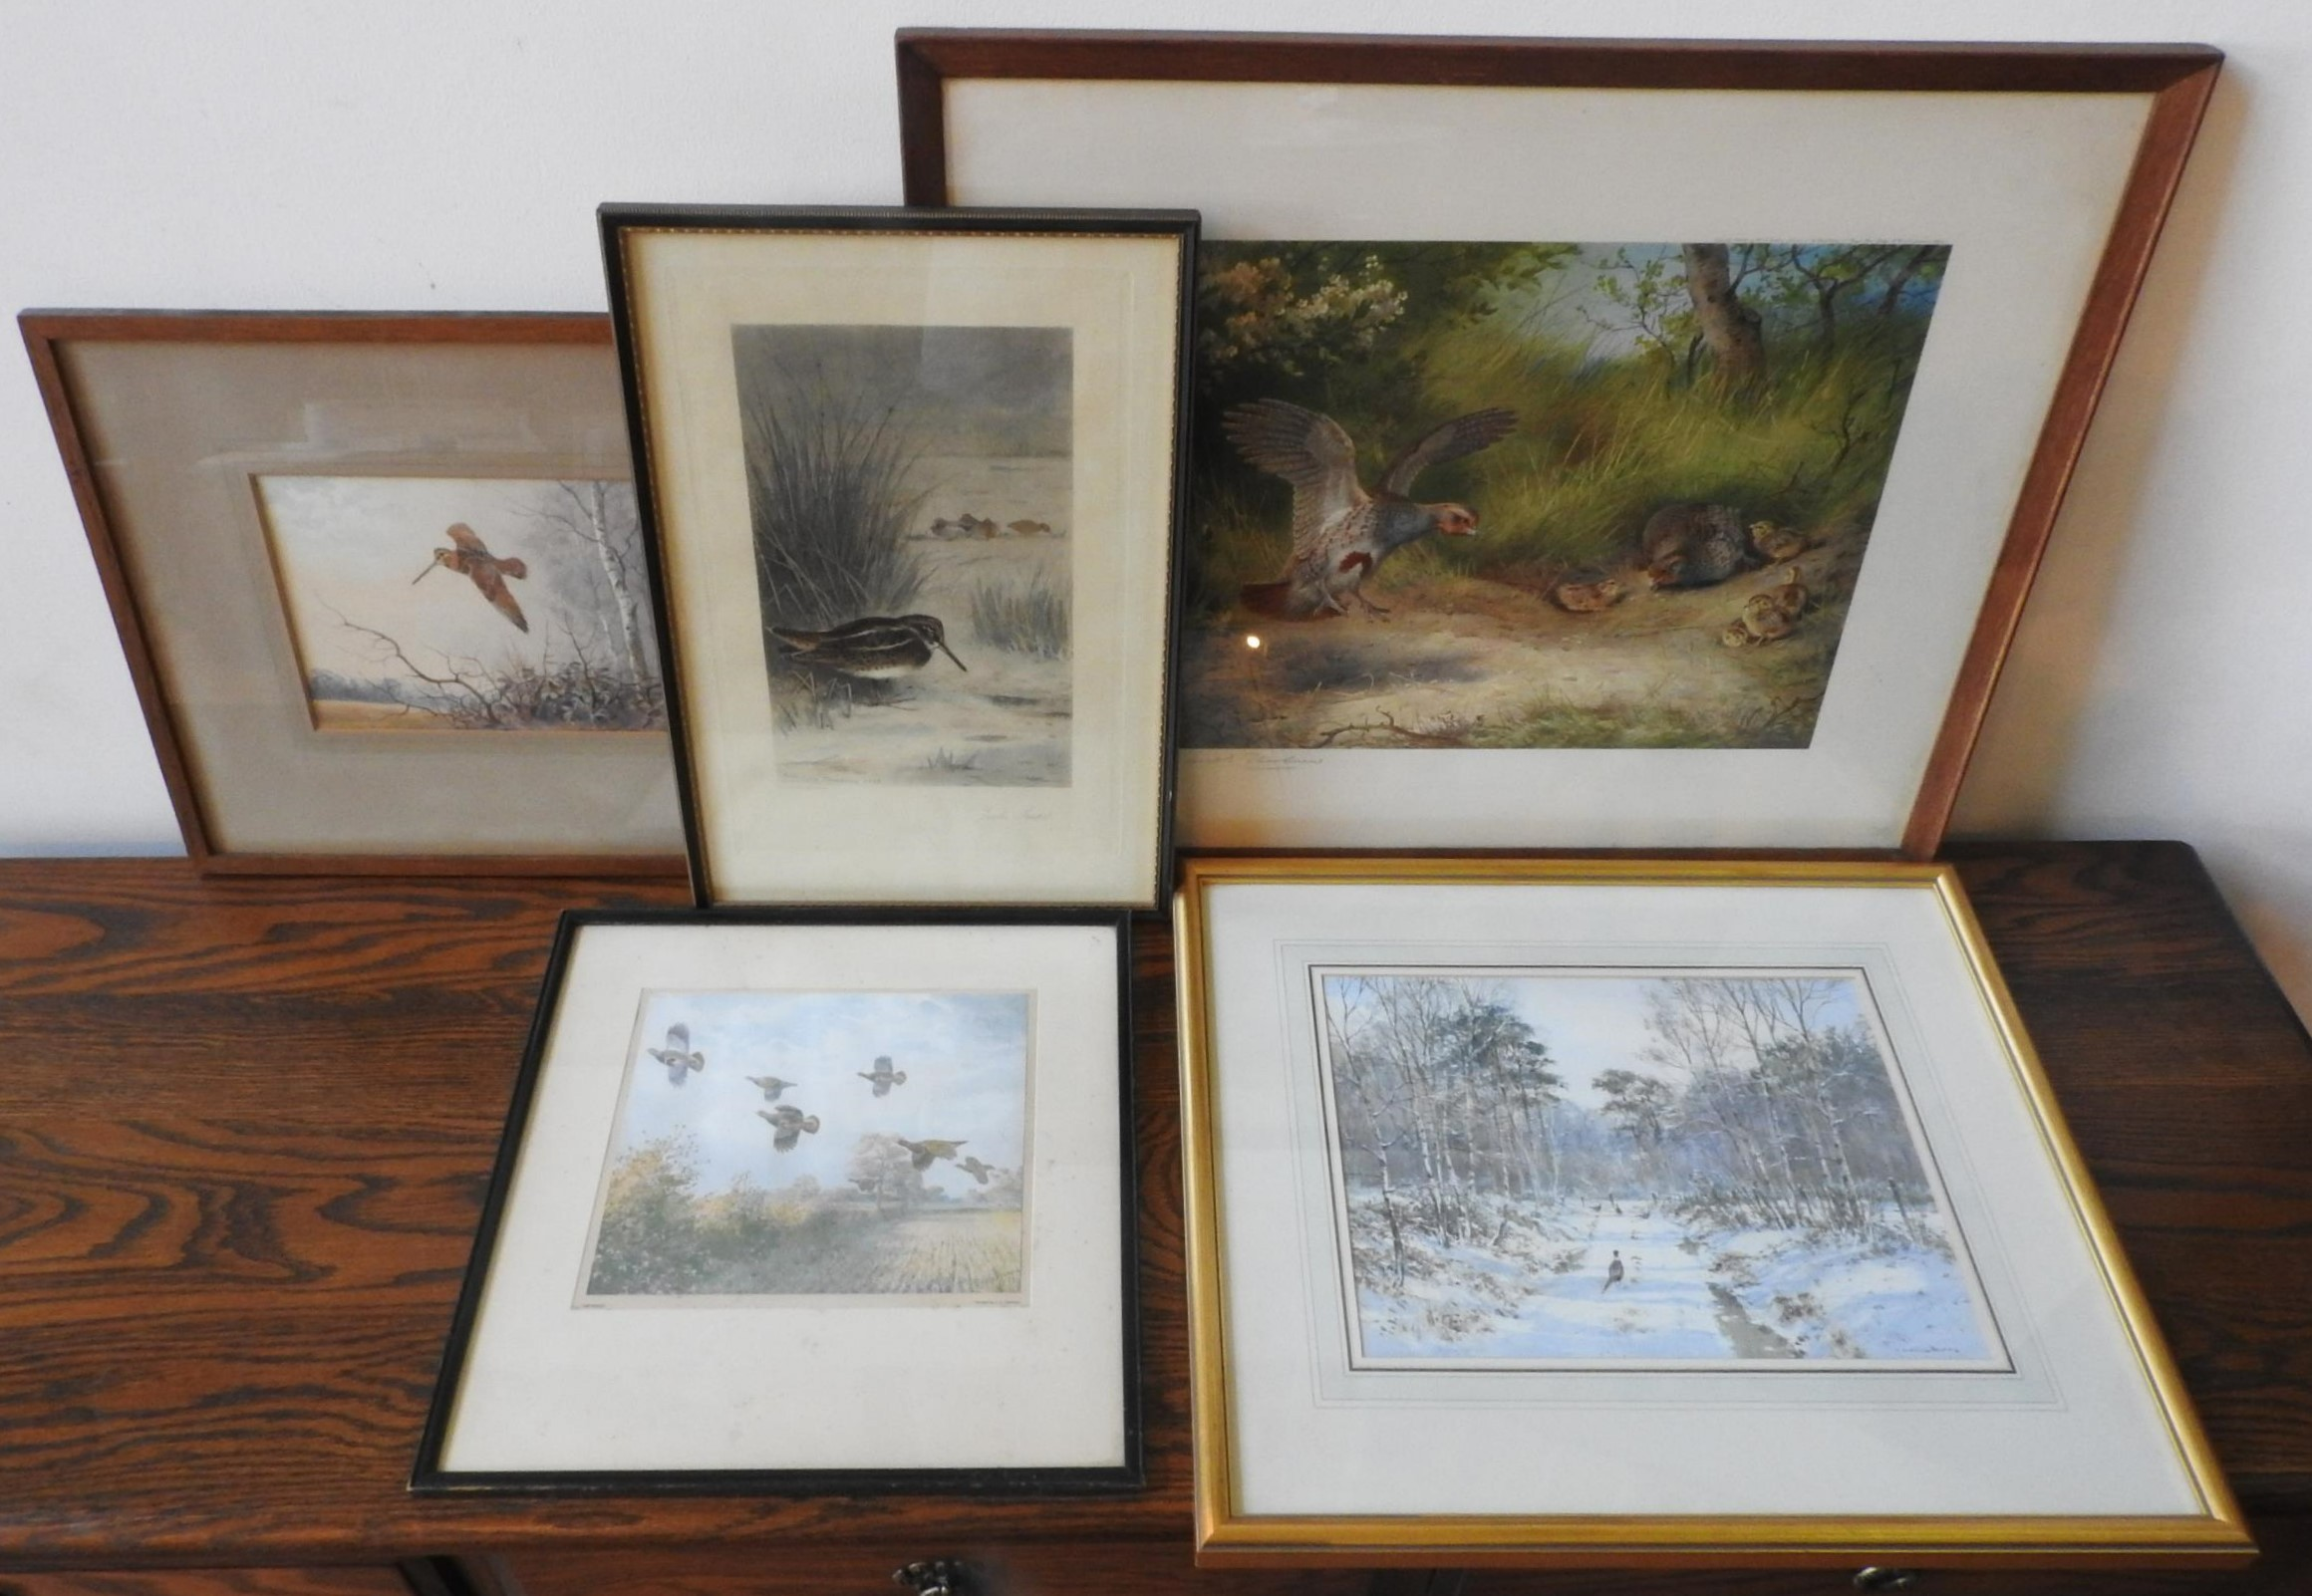 A SIGNED ARCHIBALD THORBURN PRINT OF PARTRIDGES, THREE ORNITHOLOGICAL PRINTS AND WATER COLOUR, the